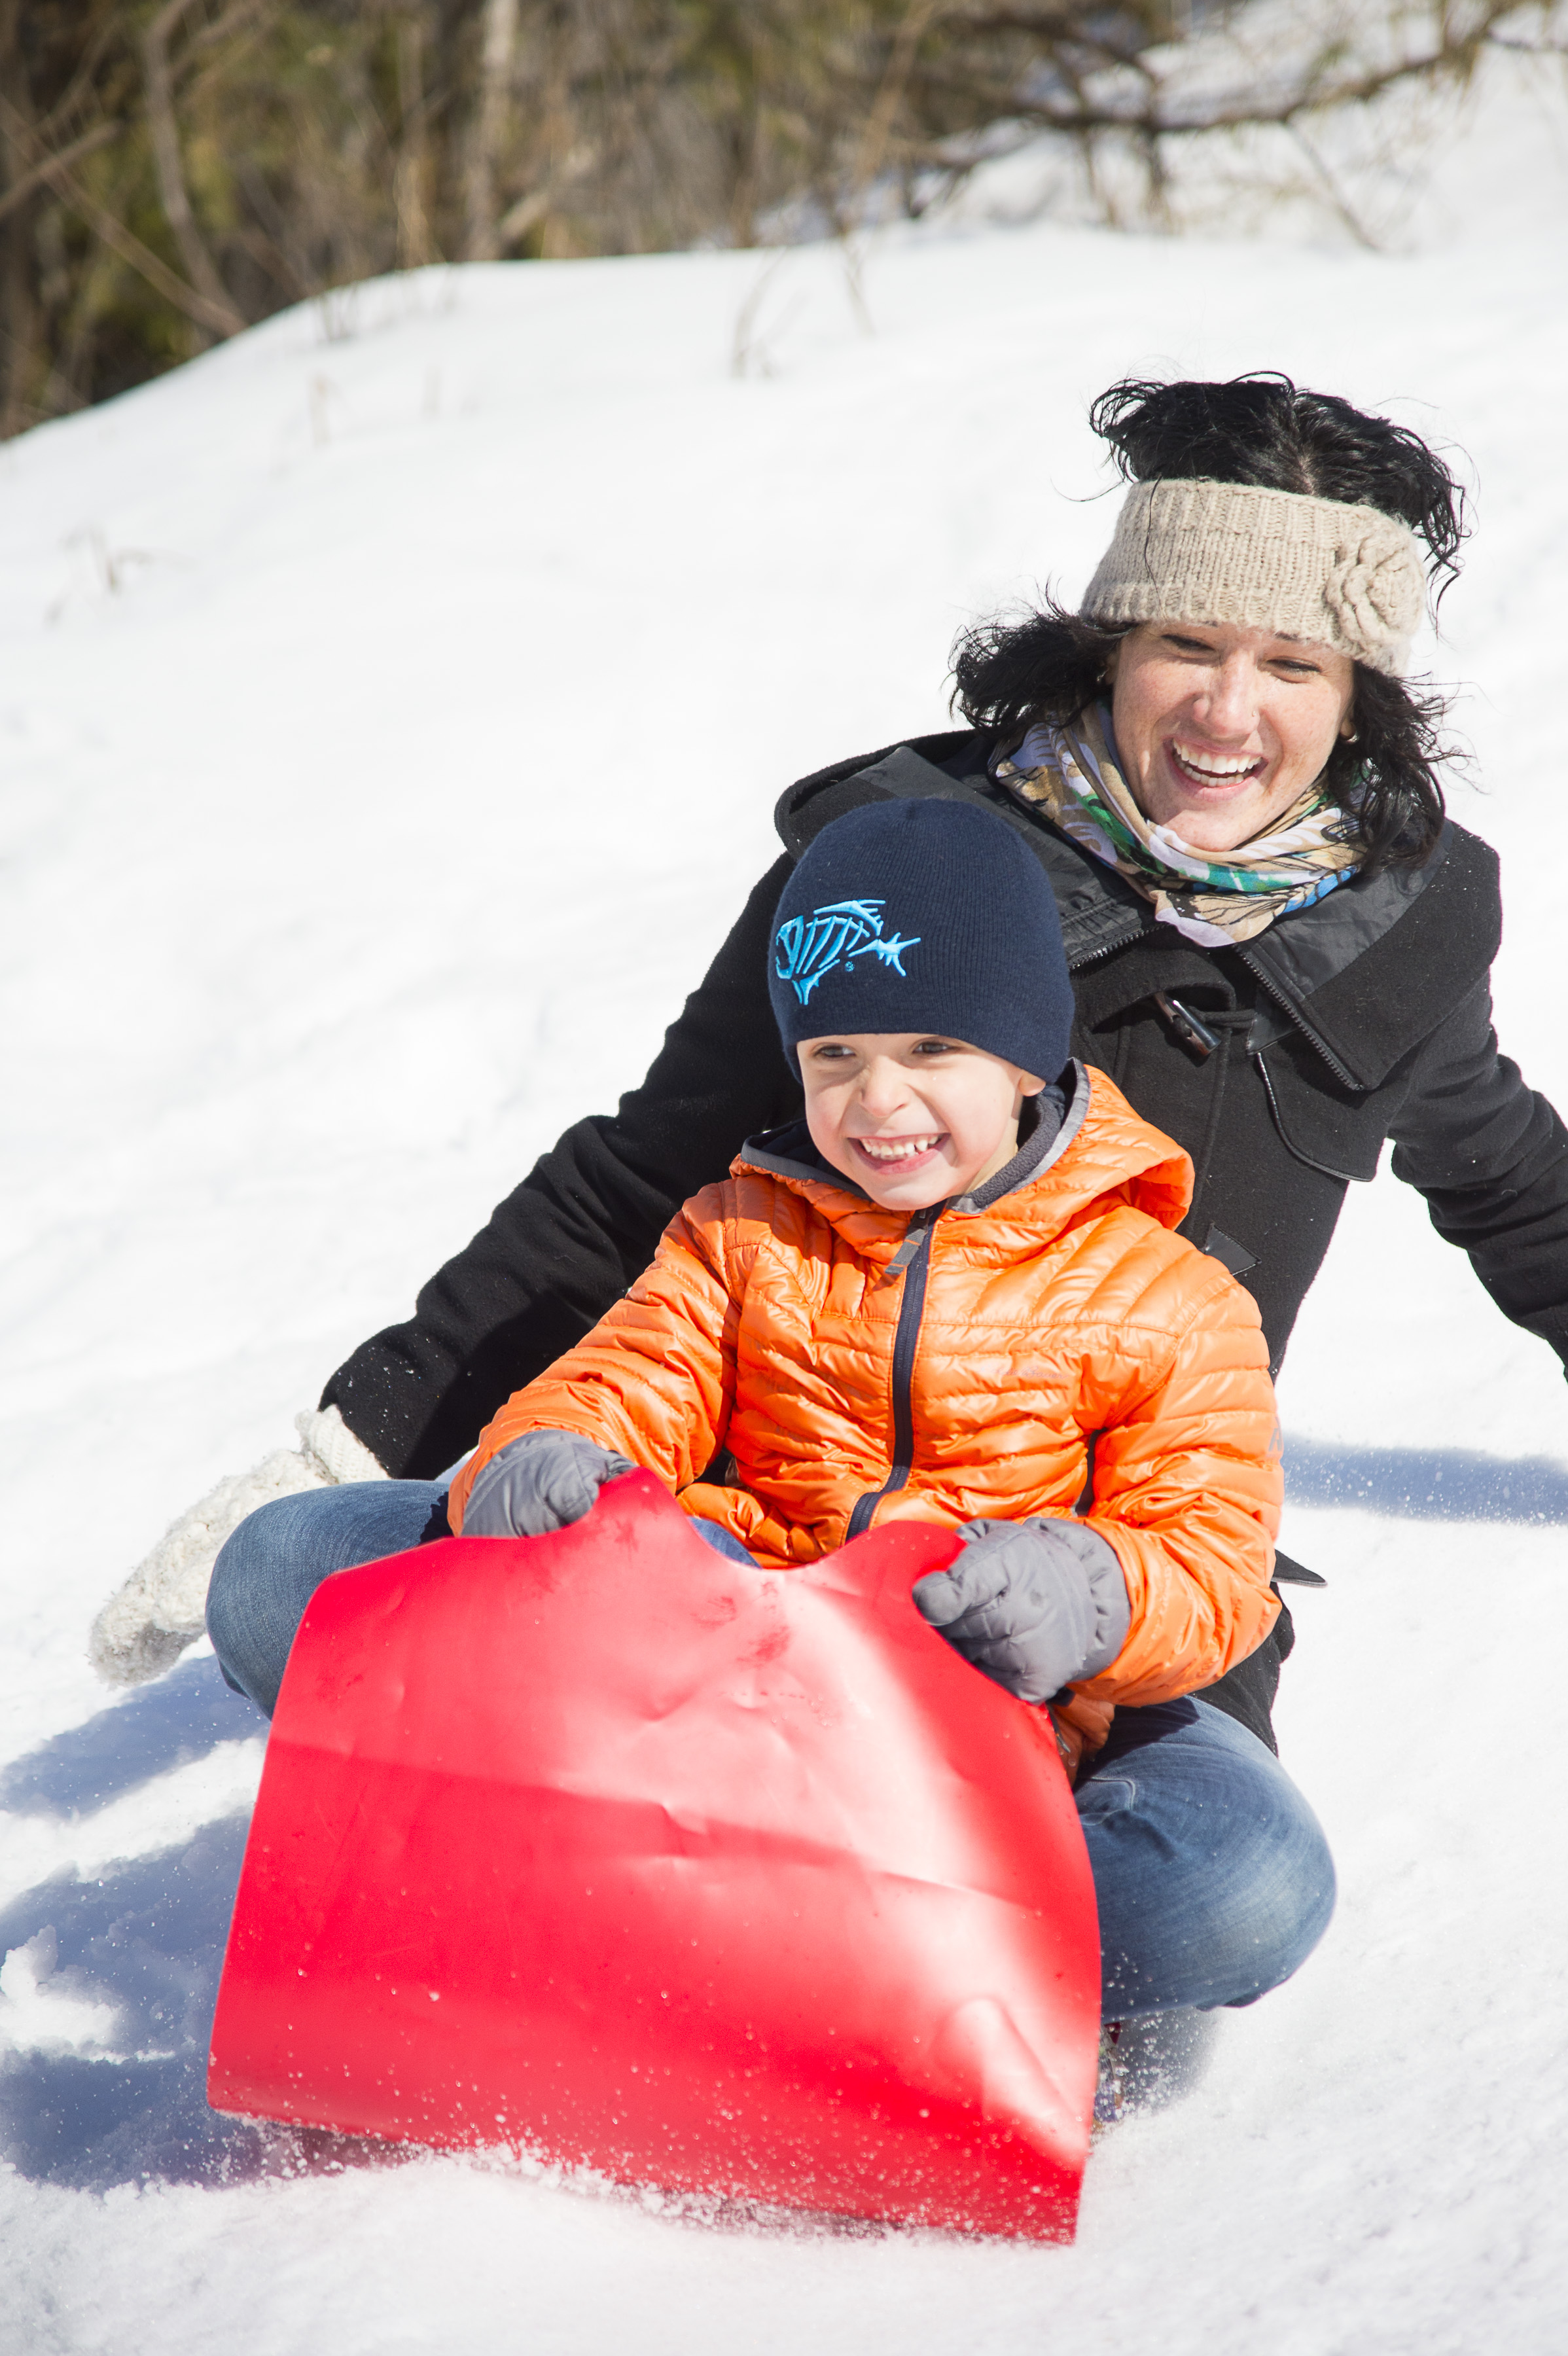 RECREATION _ SLEDDING _ TOBOGGAN_FULTONS_OHTO PHOTOSHOOT _ WINTER _ CREDIT TO TREVOR LUSH _ VERBAL PERMISSION _ 2014 (4)